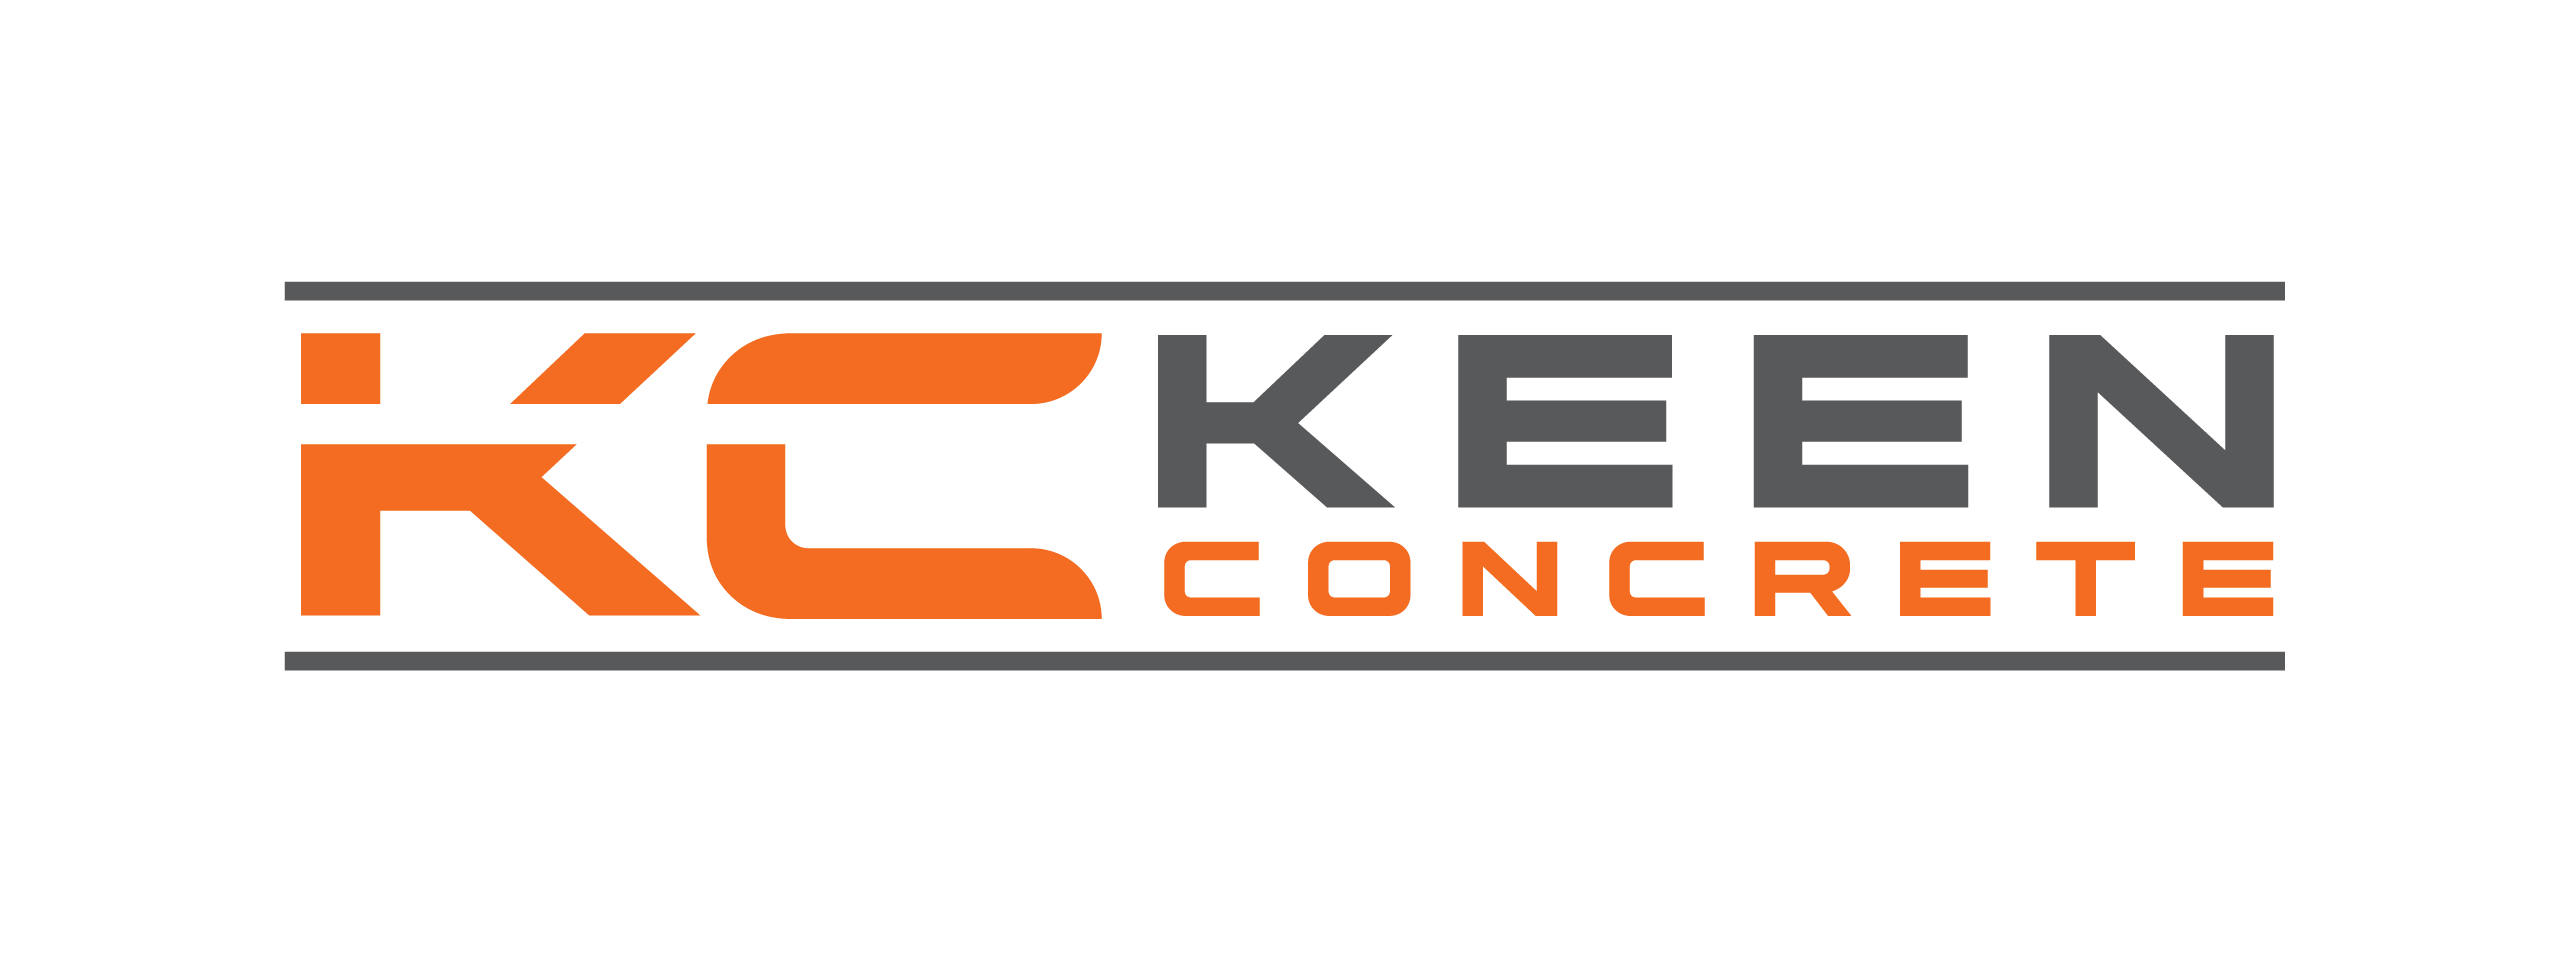 Keen Concrete Co